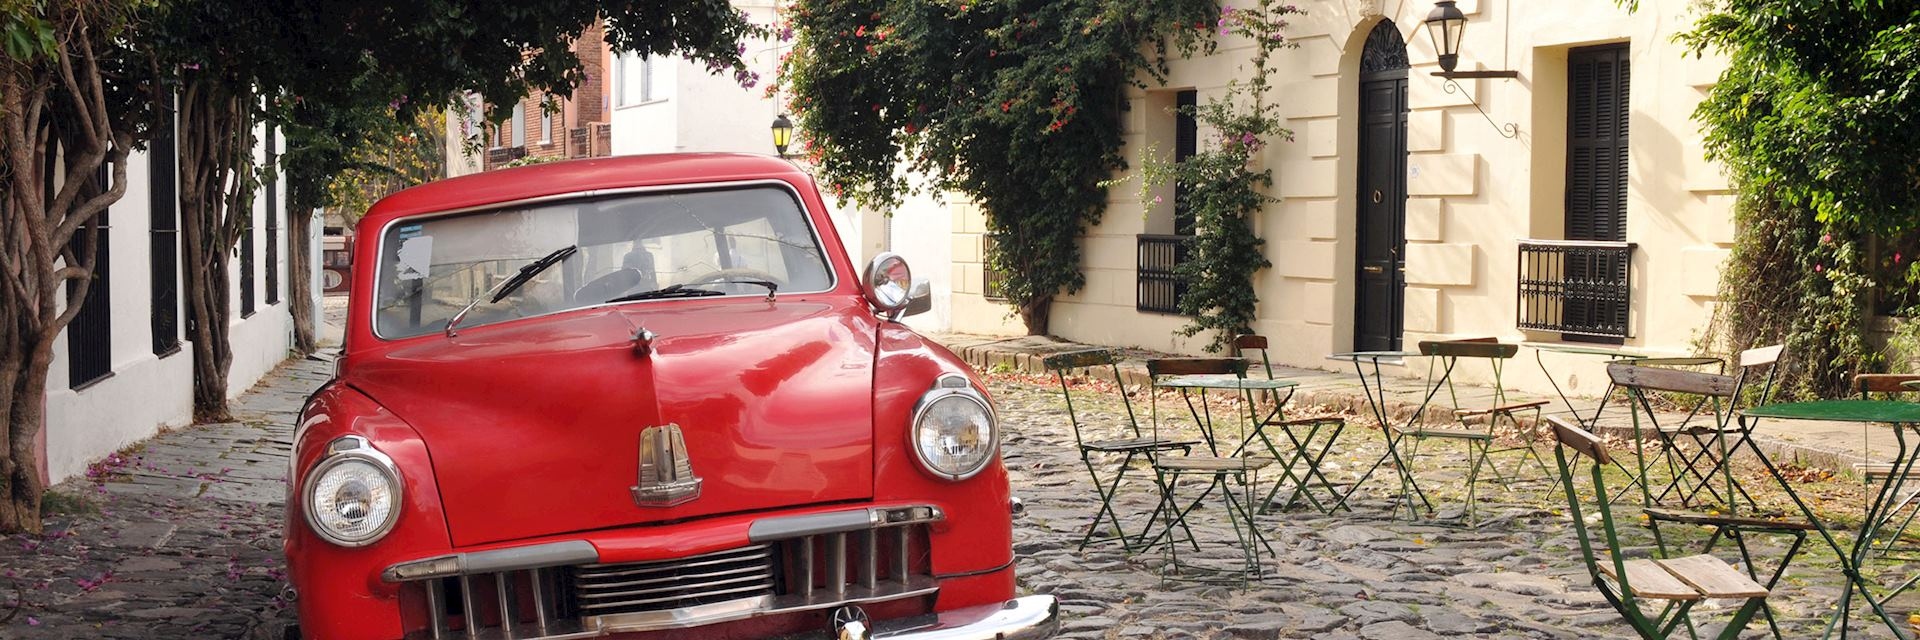 1950s car on one of Uruguay's cobbled streets